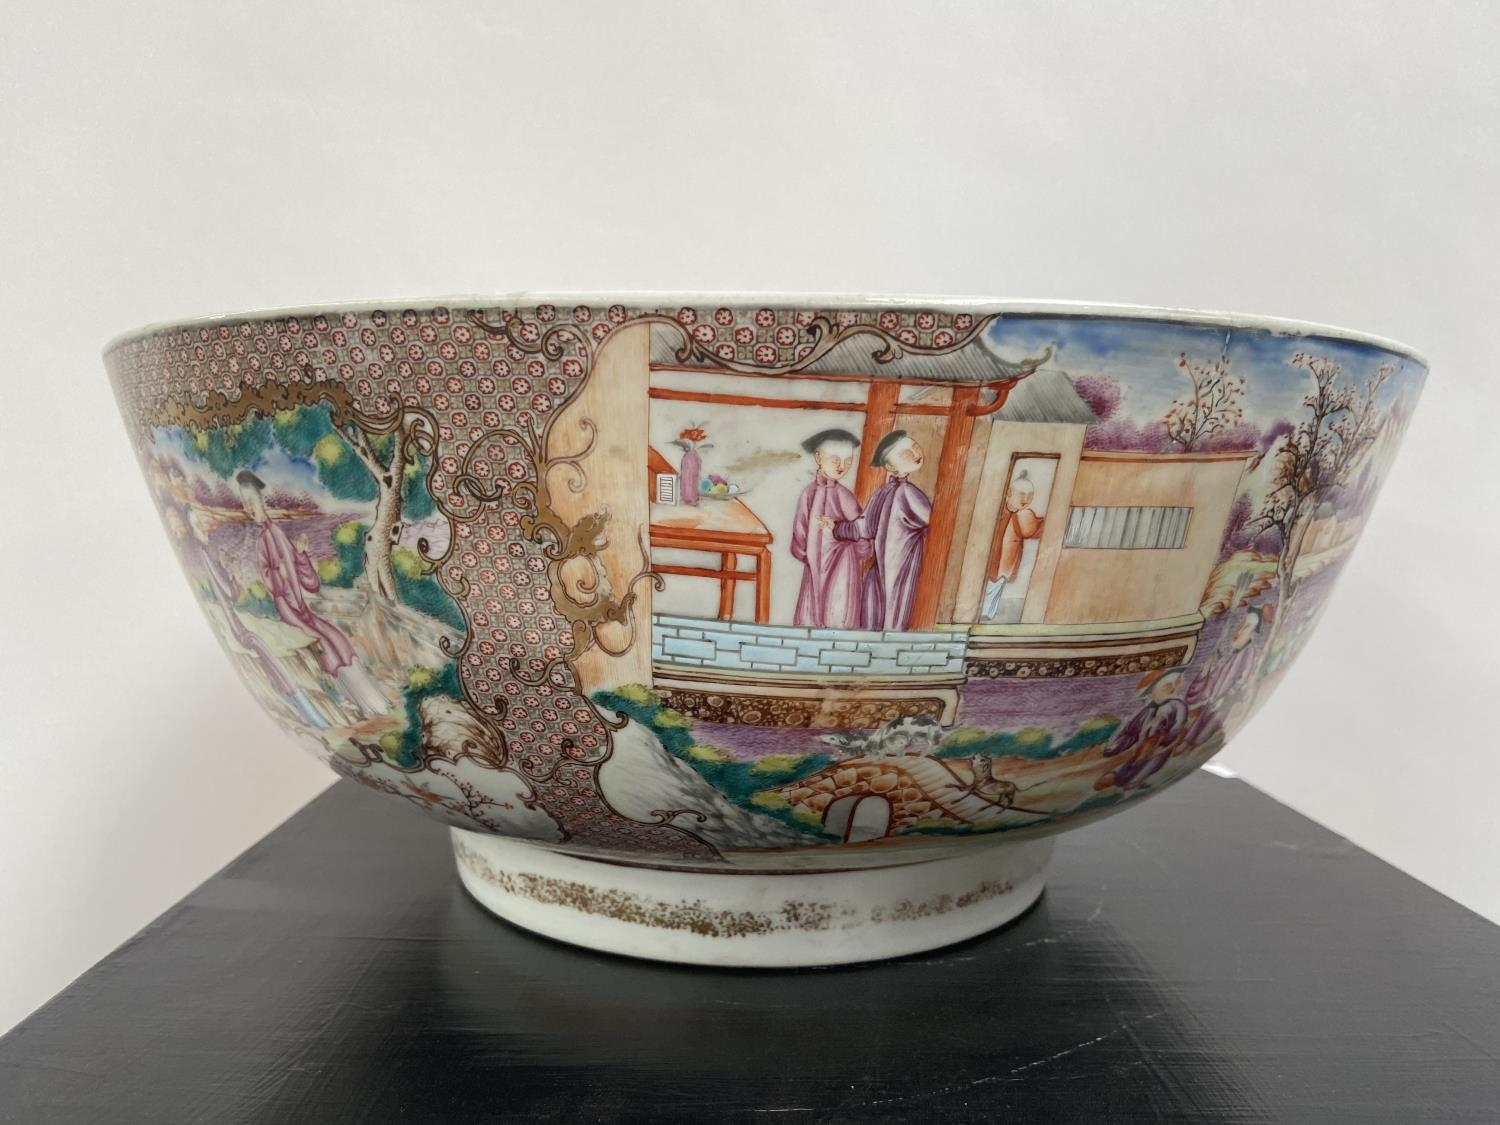 A LARGE 19TH CENTURY CHINESE HAND PAINTED BOWL. EXTERIOR DEPICTS CHINESE HUNTING SCENE PANELS. THE - Image 27 of 39